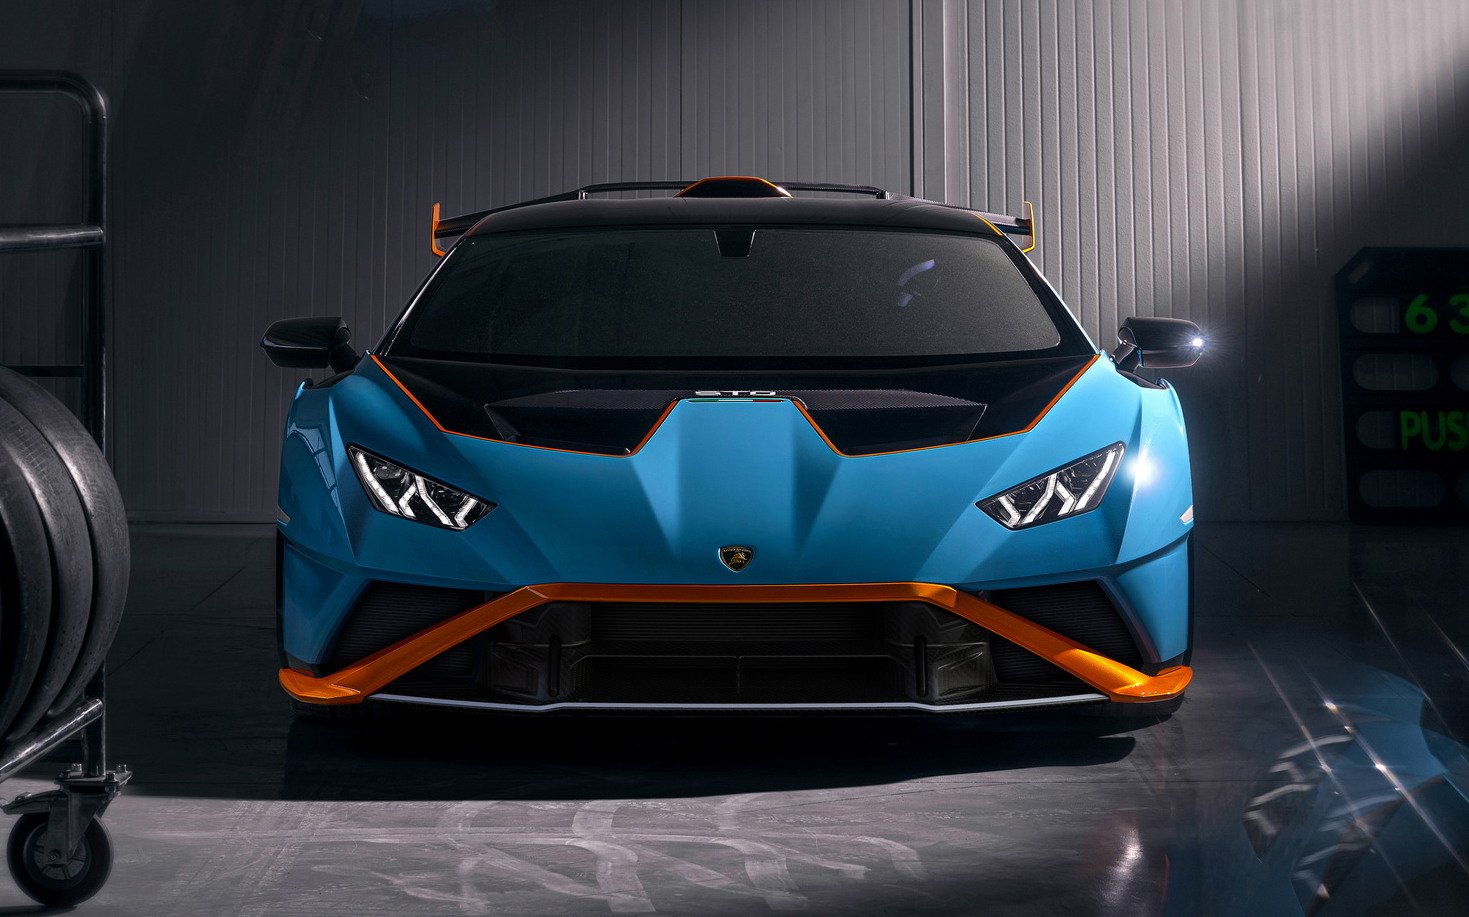 The long-awaited Lamborghini Huracan STO (stands for 'Super Trofeo Omologata') is finally here. Let us see what this road-legal track weapon is all about.